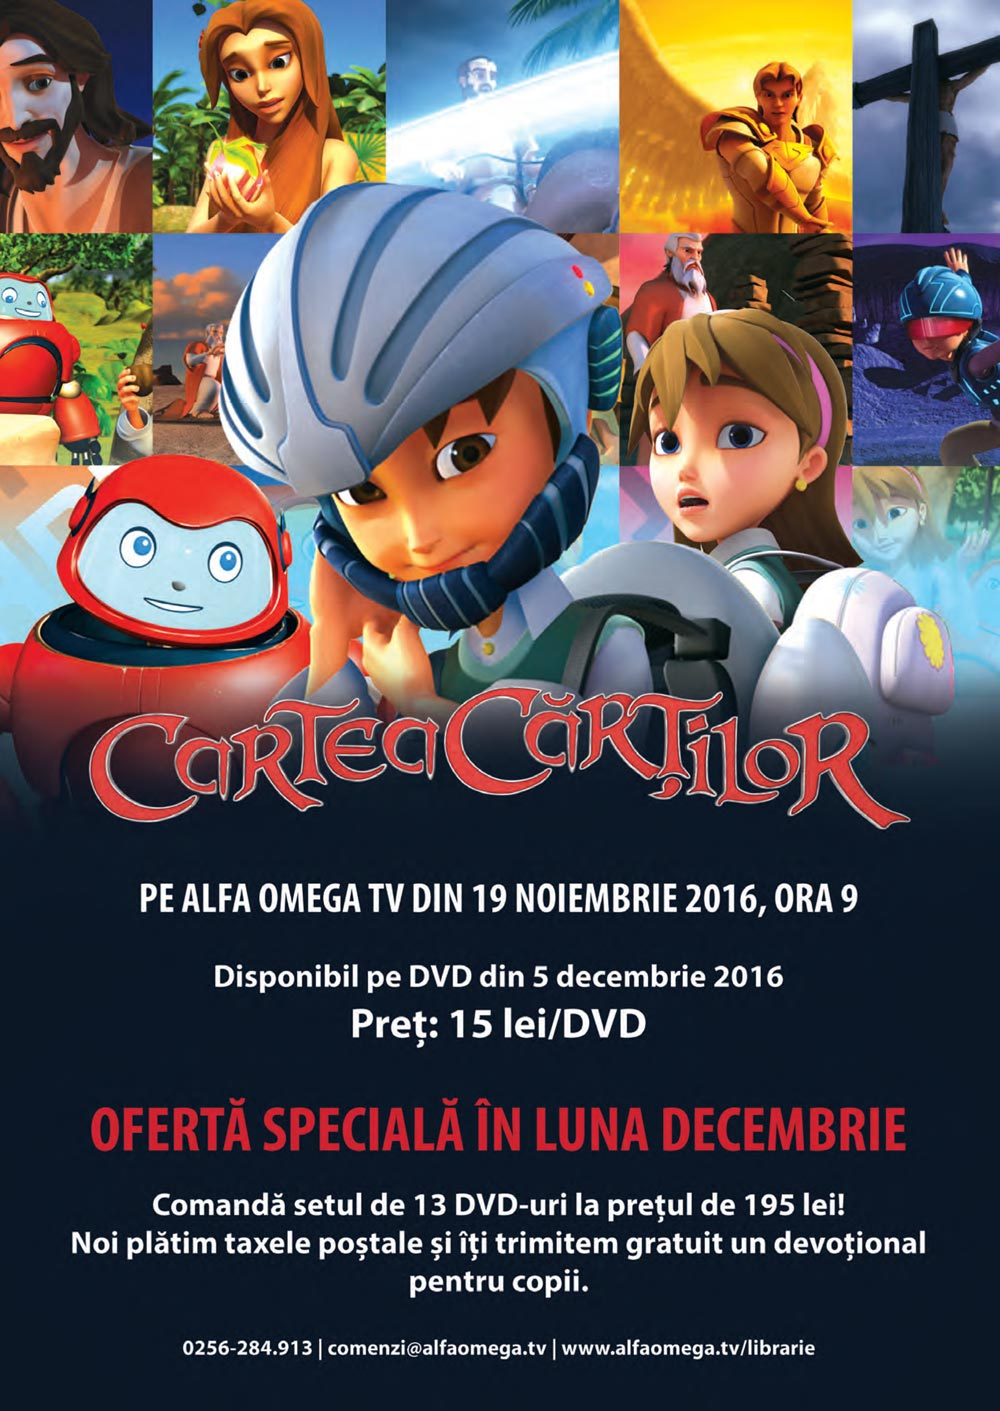 cartea cartilor oferta setdvd 1000